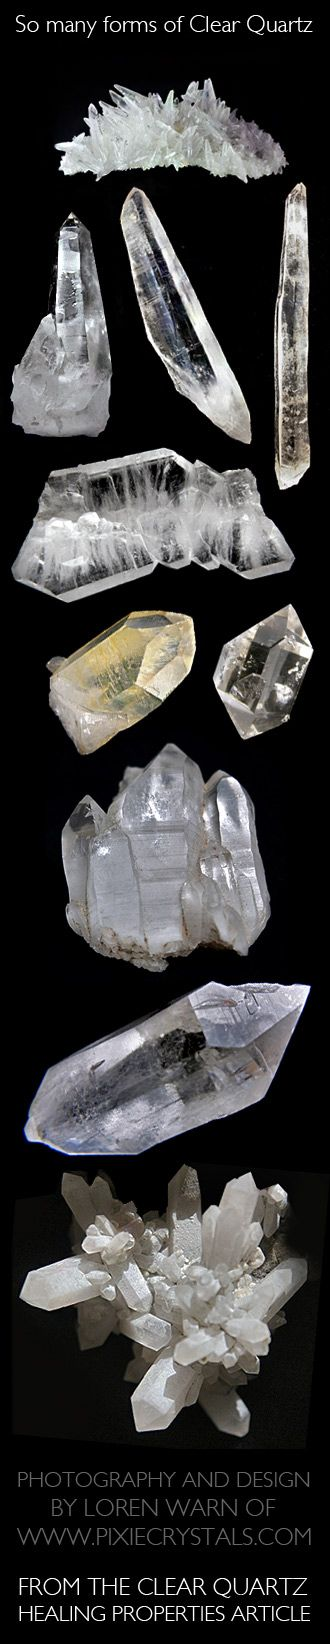 CLEAR QUARTZ Crystal Healing Properties - CLEAR QUARTZ Crystals Meaning, Healing and Further Explanations #pixiecrystals loren warn -x- Click on pic for full article...